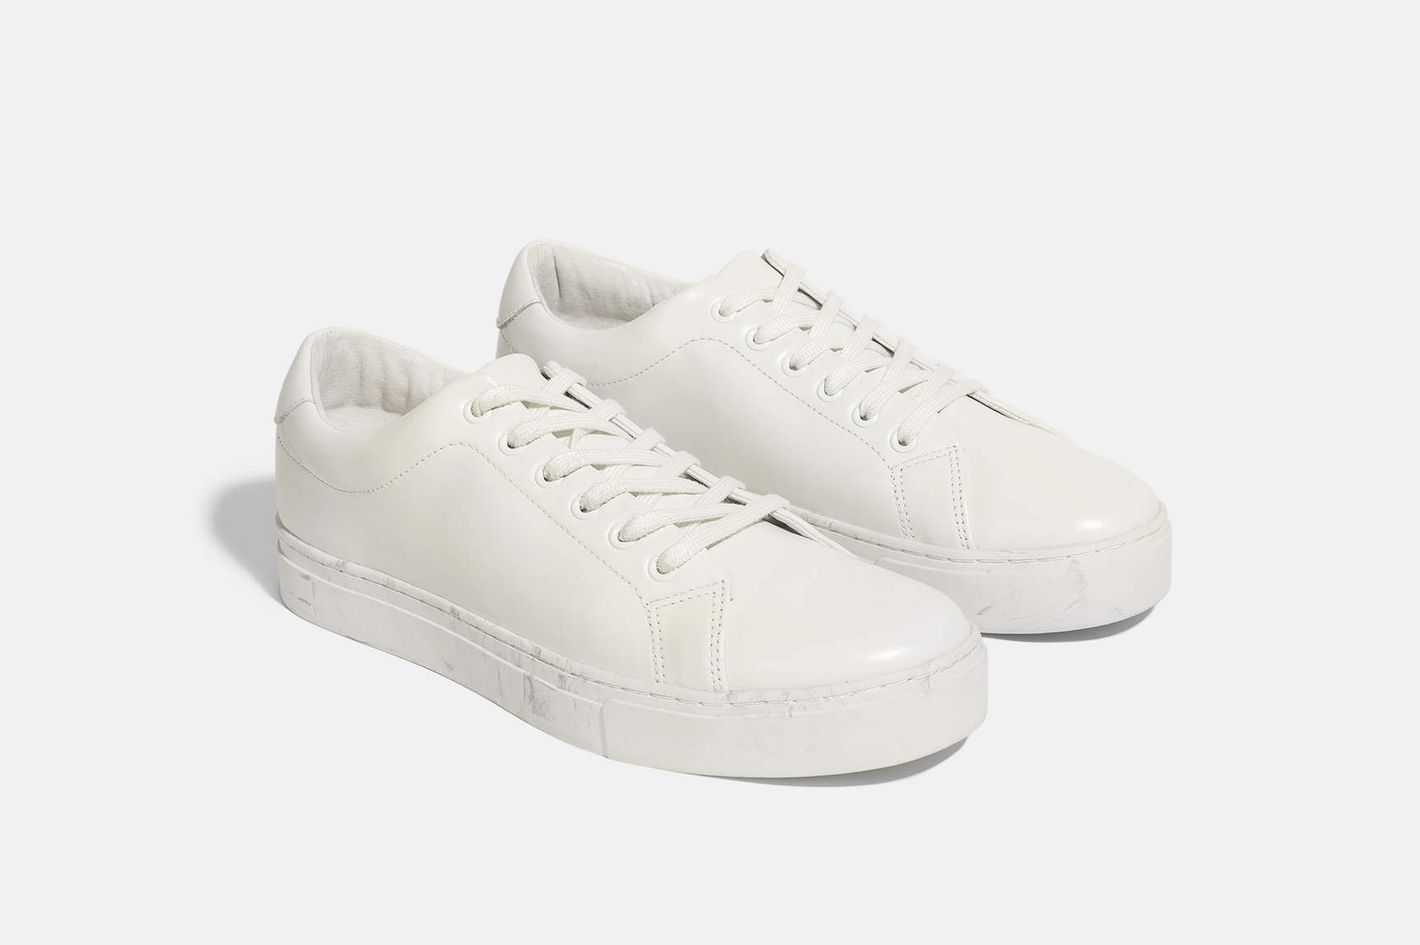 Hey Ladies! Several styles of our shoes need to be ordered in men's sizes. You'll know which ones by looking at the last line of the shoe's description. If it says